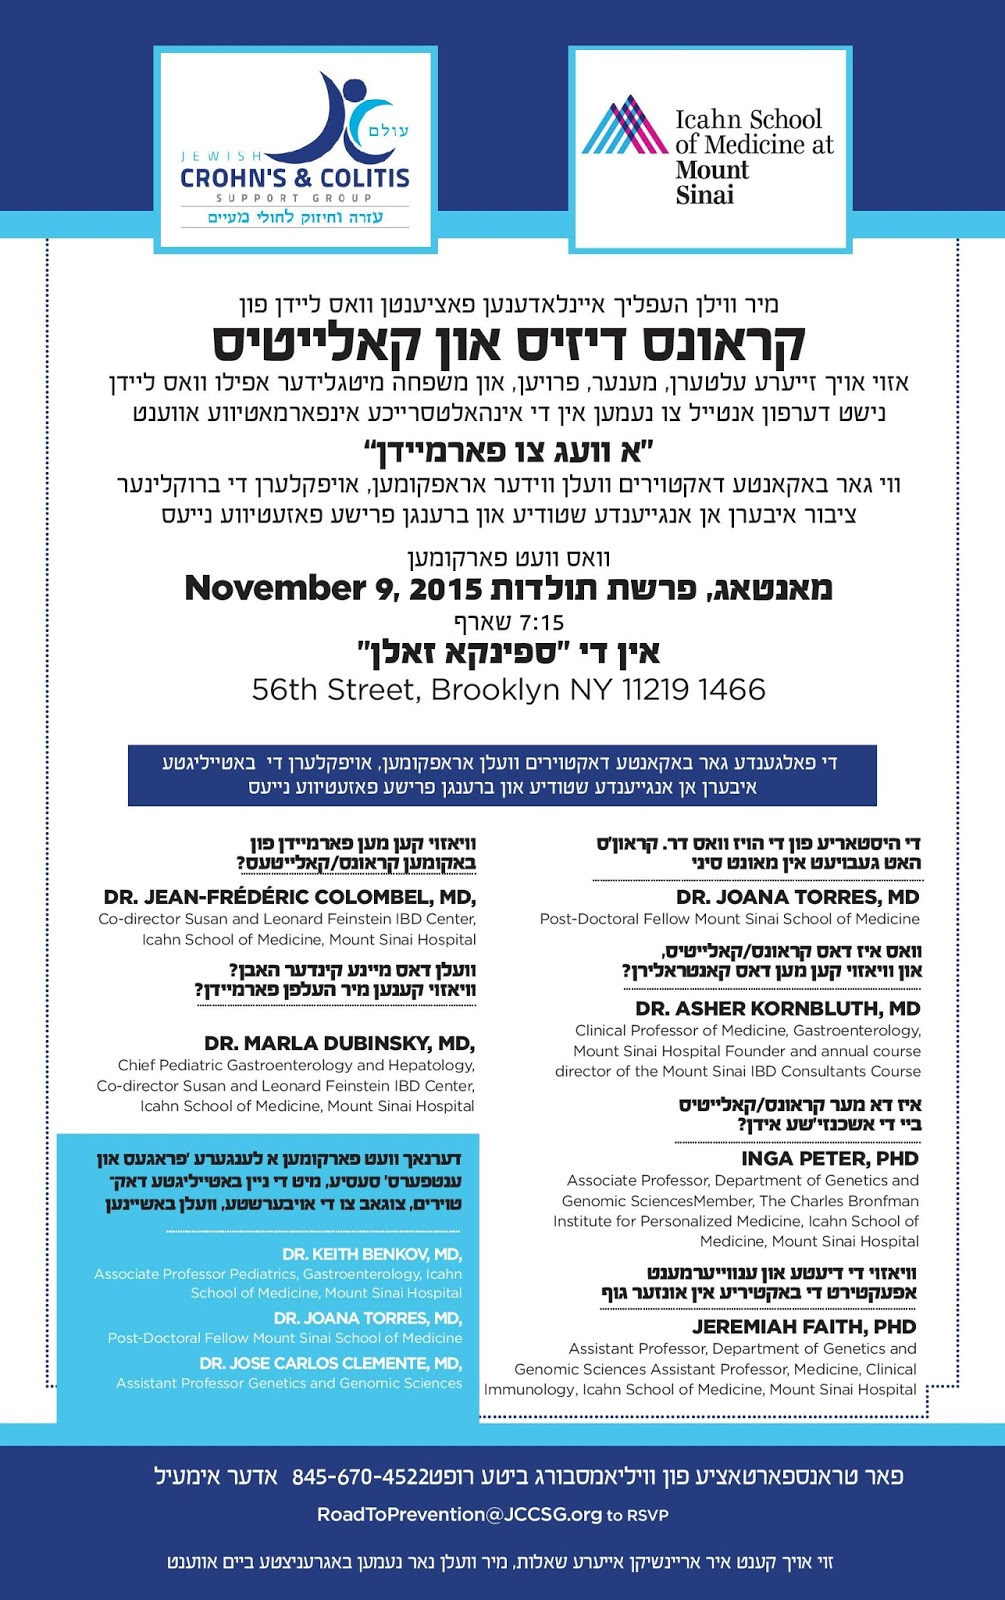 JCCSG ~ Jewish Crohn's & Colitis Support Group: 'Road to Prevention